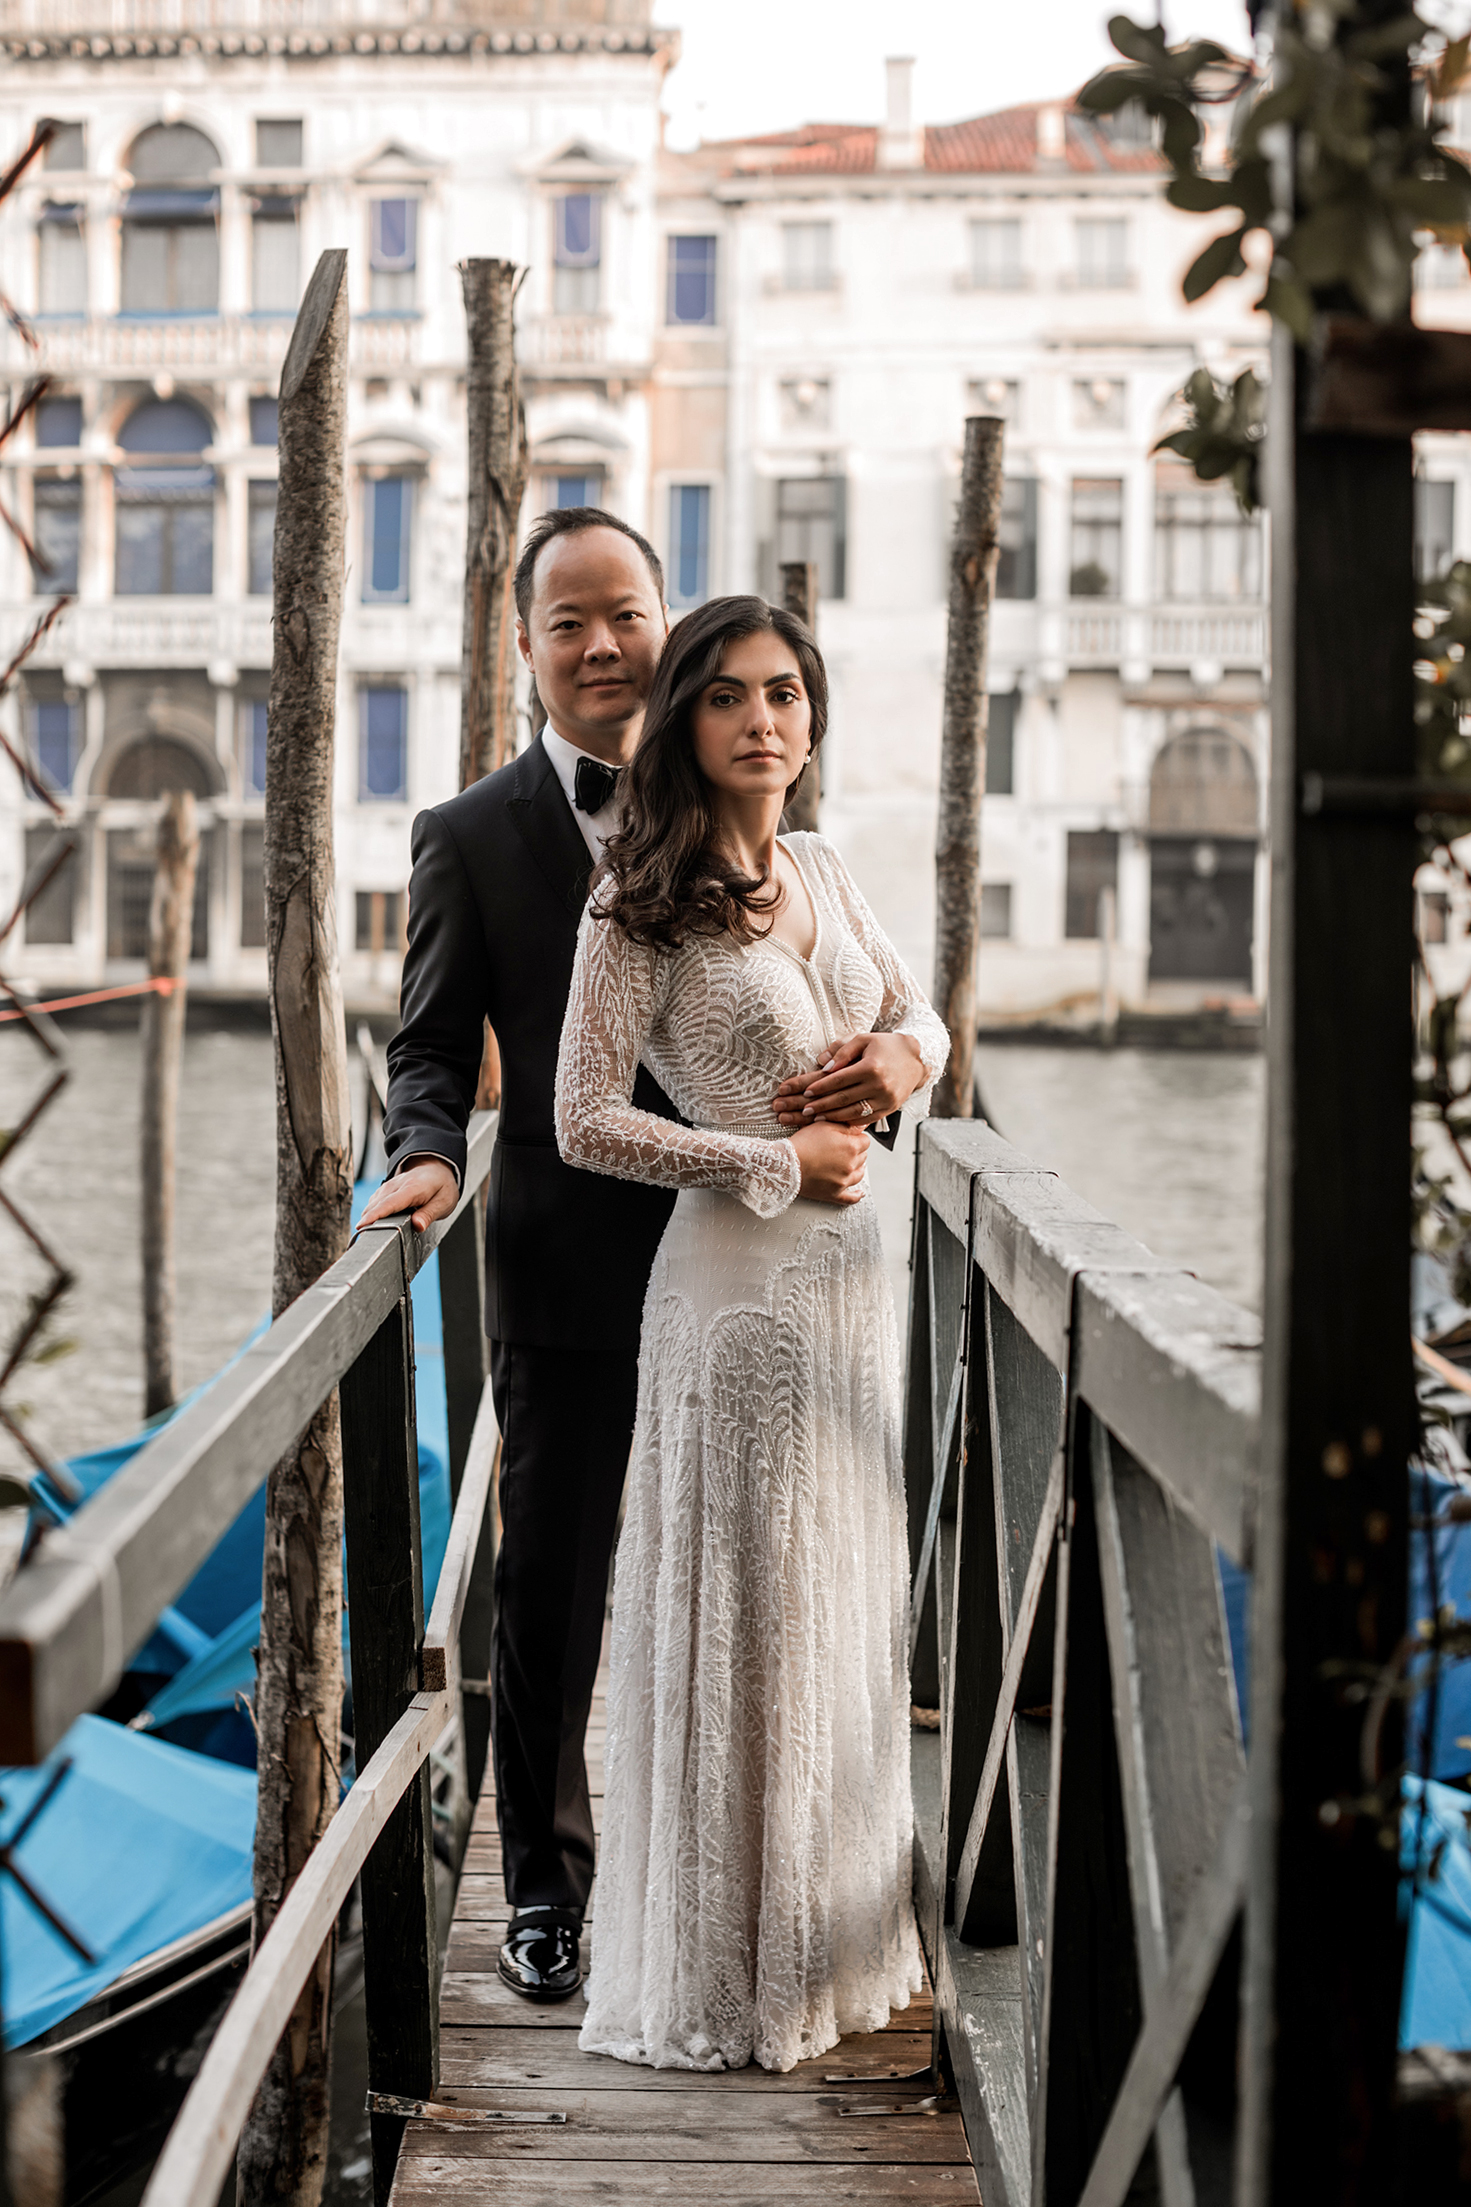 elle raymond venice wedding couple on dock